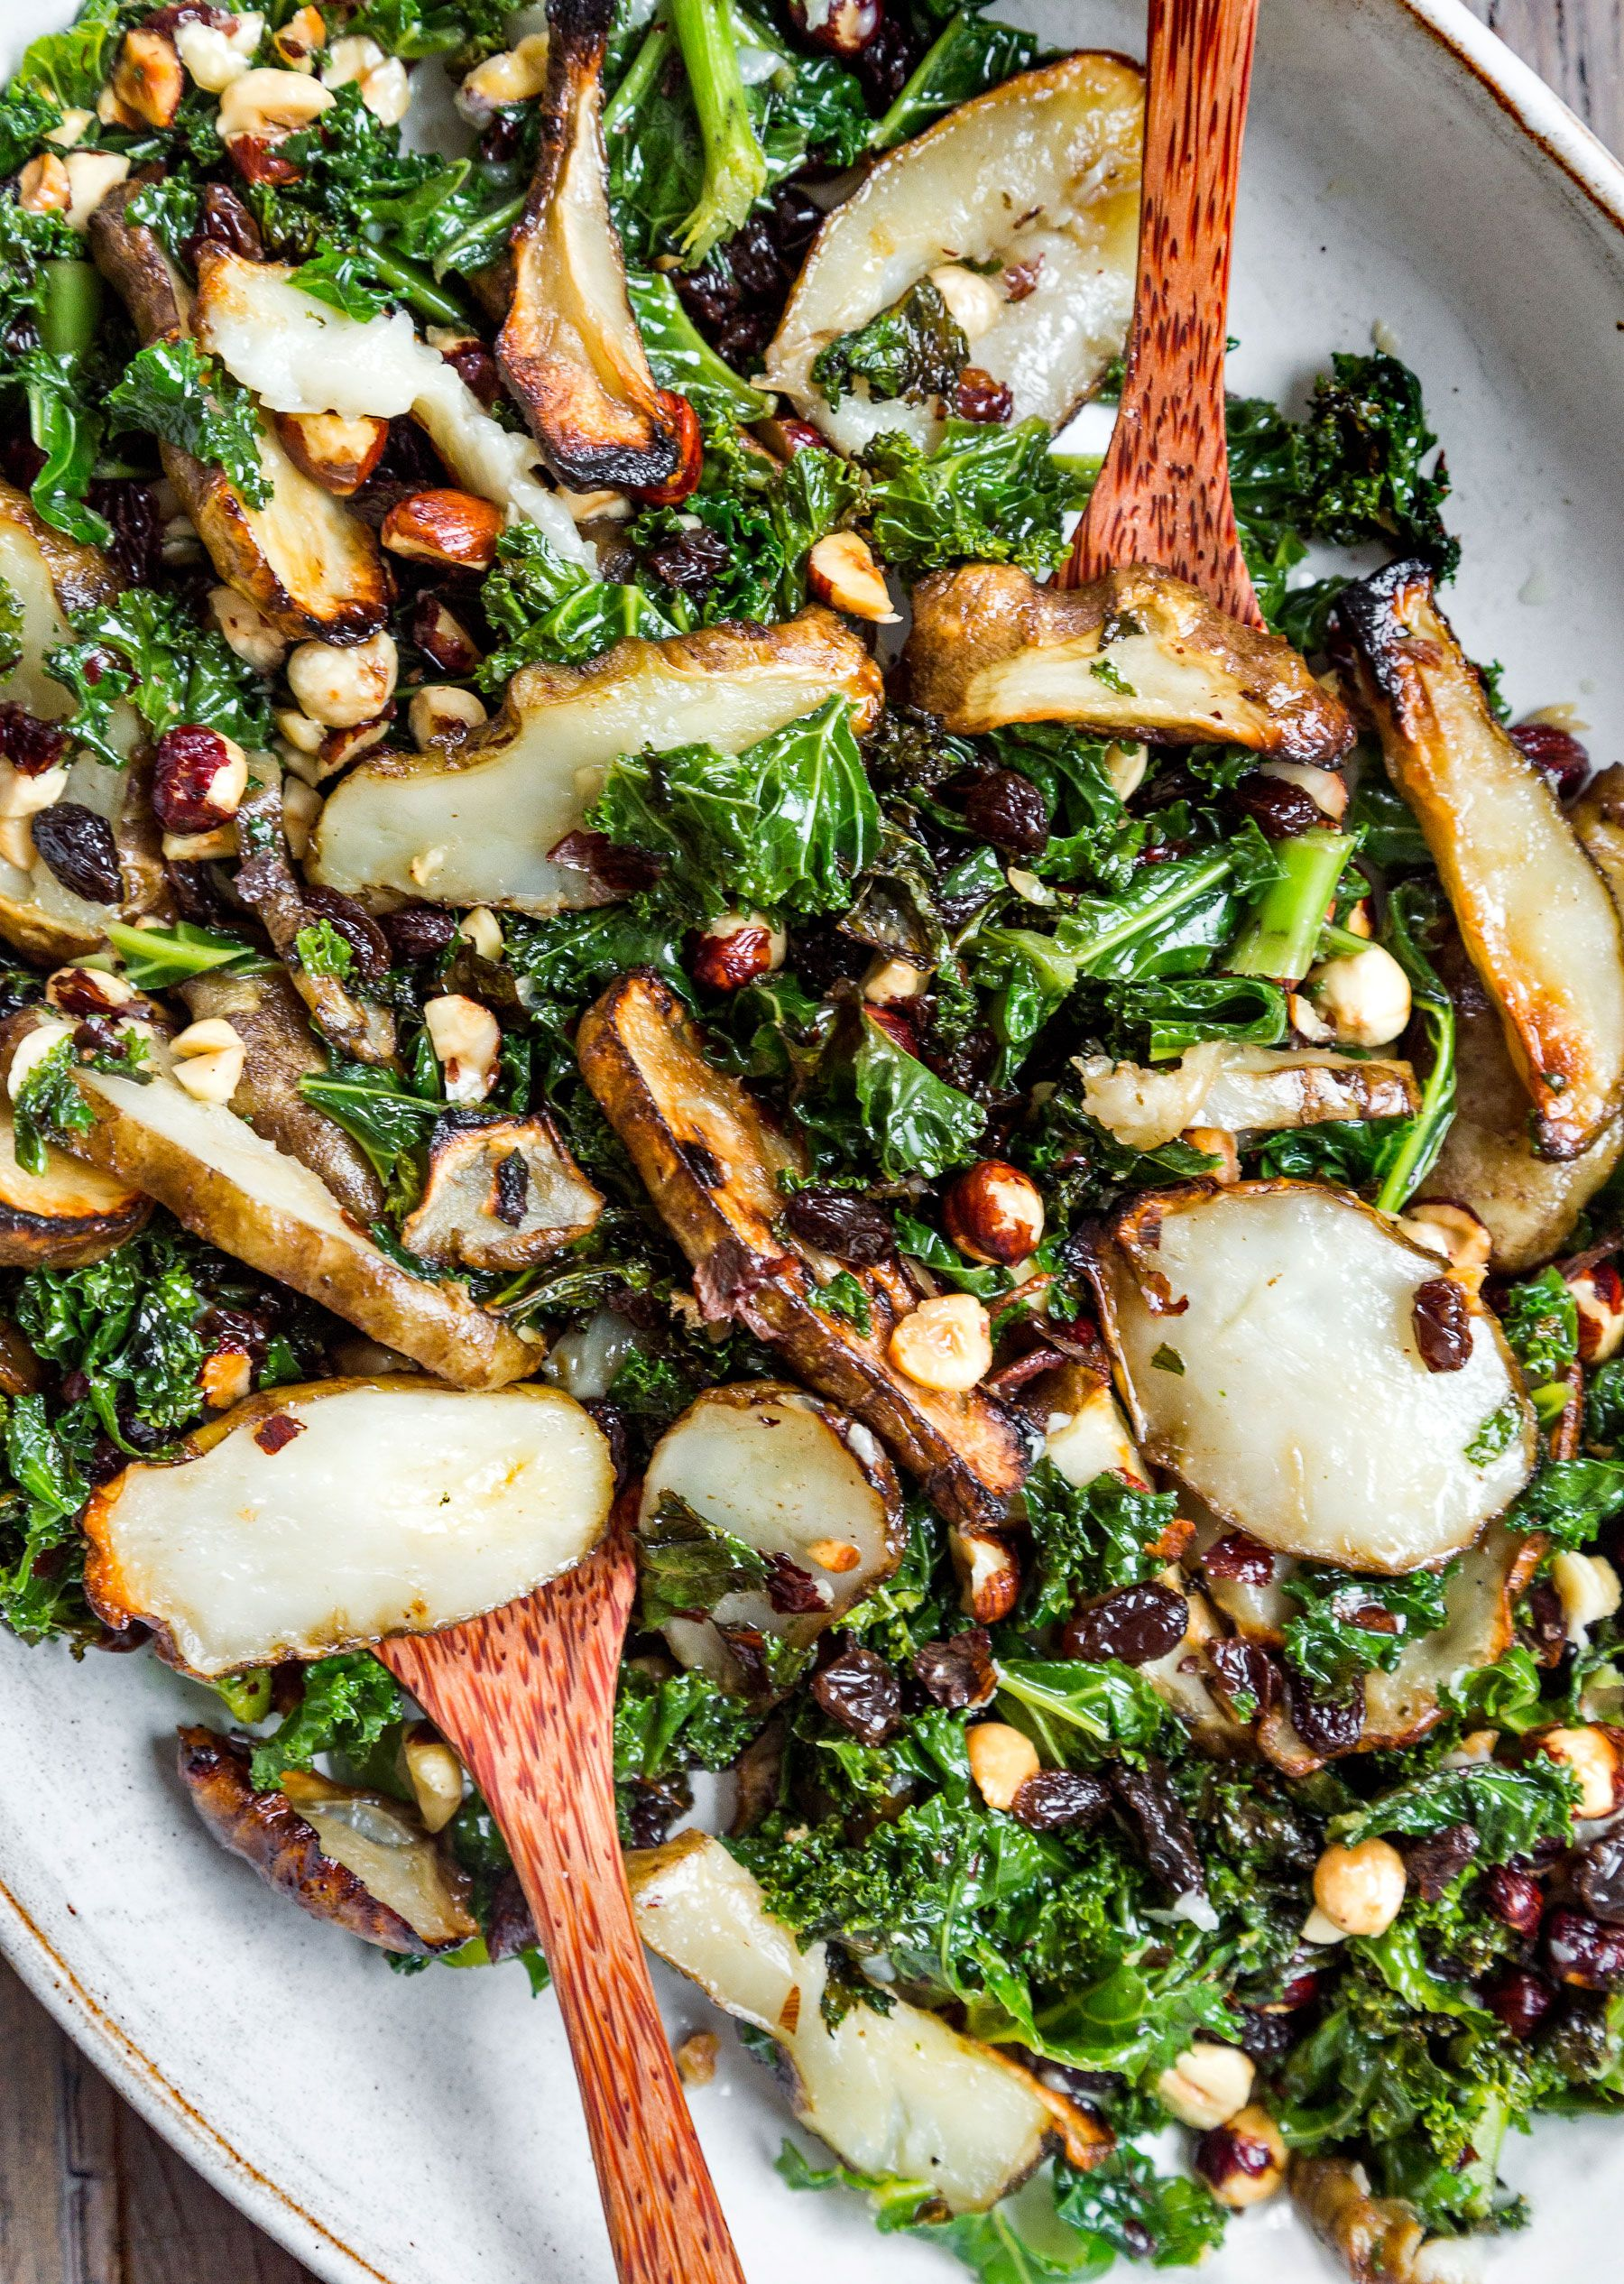 Roasted Jerusalem Artichoke Hazelnut And Kale Salad Deliciouslyella Artichoke Recipes Artichoke Recipes Healthy Jerusalem Artichoke Recipe